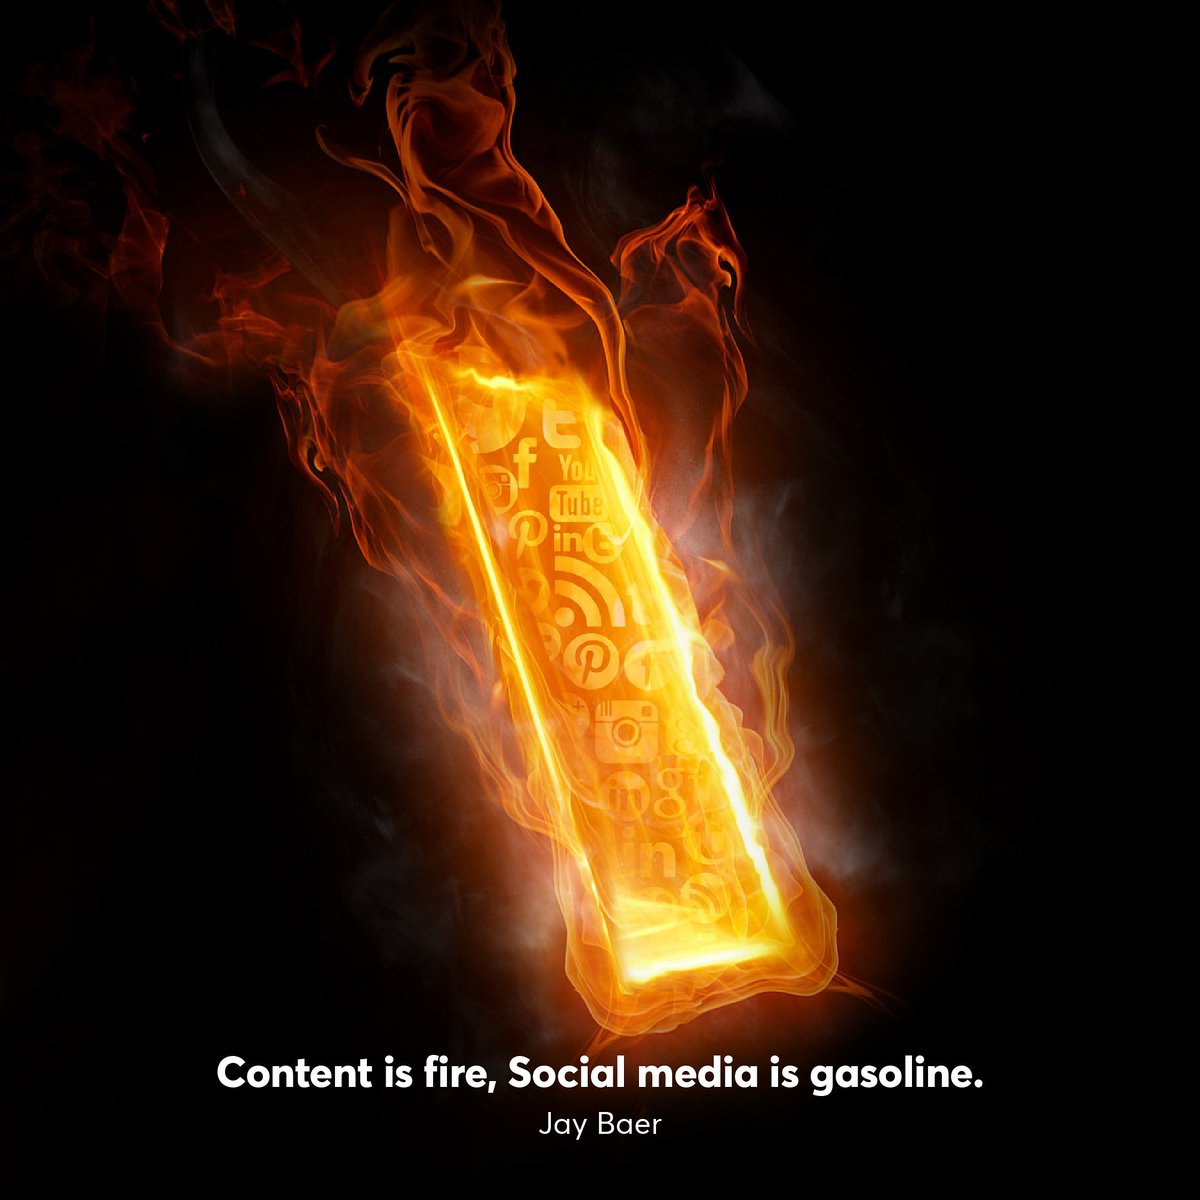 """Ignite your week with creativity 🔥""""Content is fire, social media is gasoline."""" - Jay Baer • • • #tbwa #tbwakuwait #kuwait #sunday  #socialmedia #marketing #creativity #advertising #agency #content #jaybaer https://t.co/K1aNfmIuwx"""